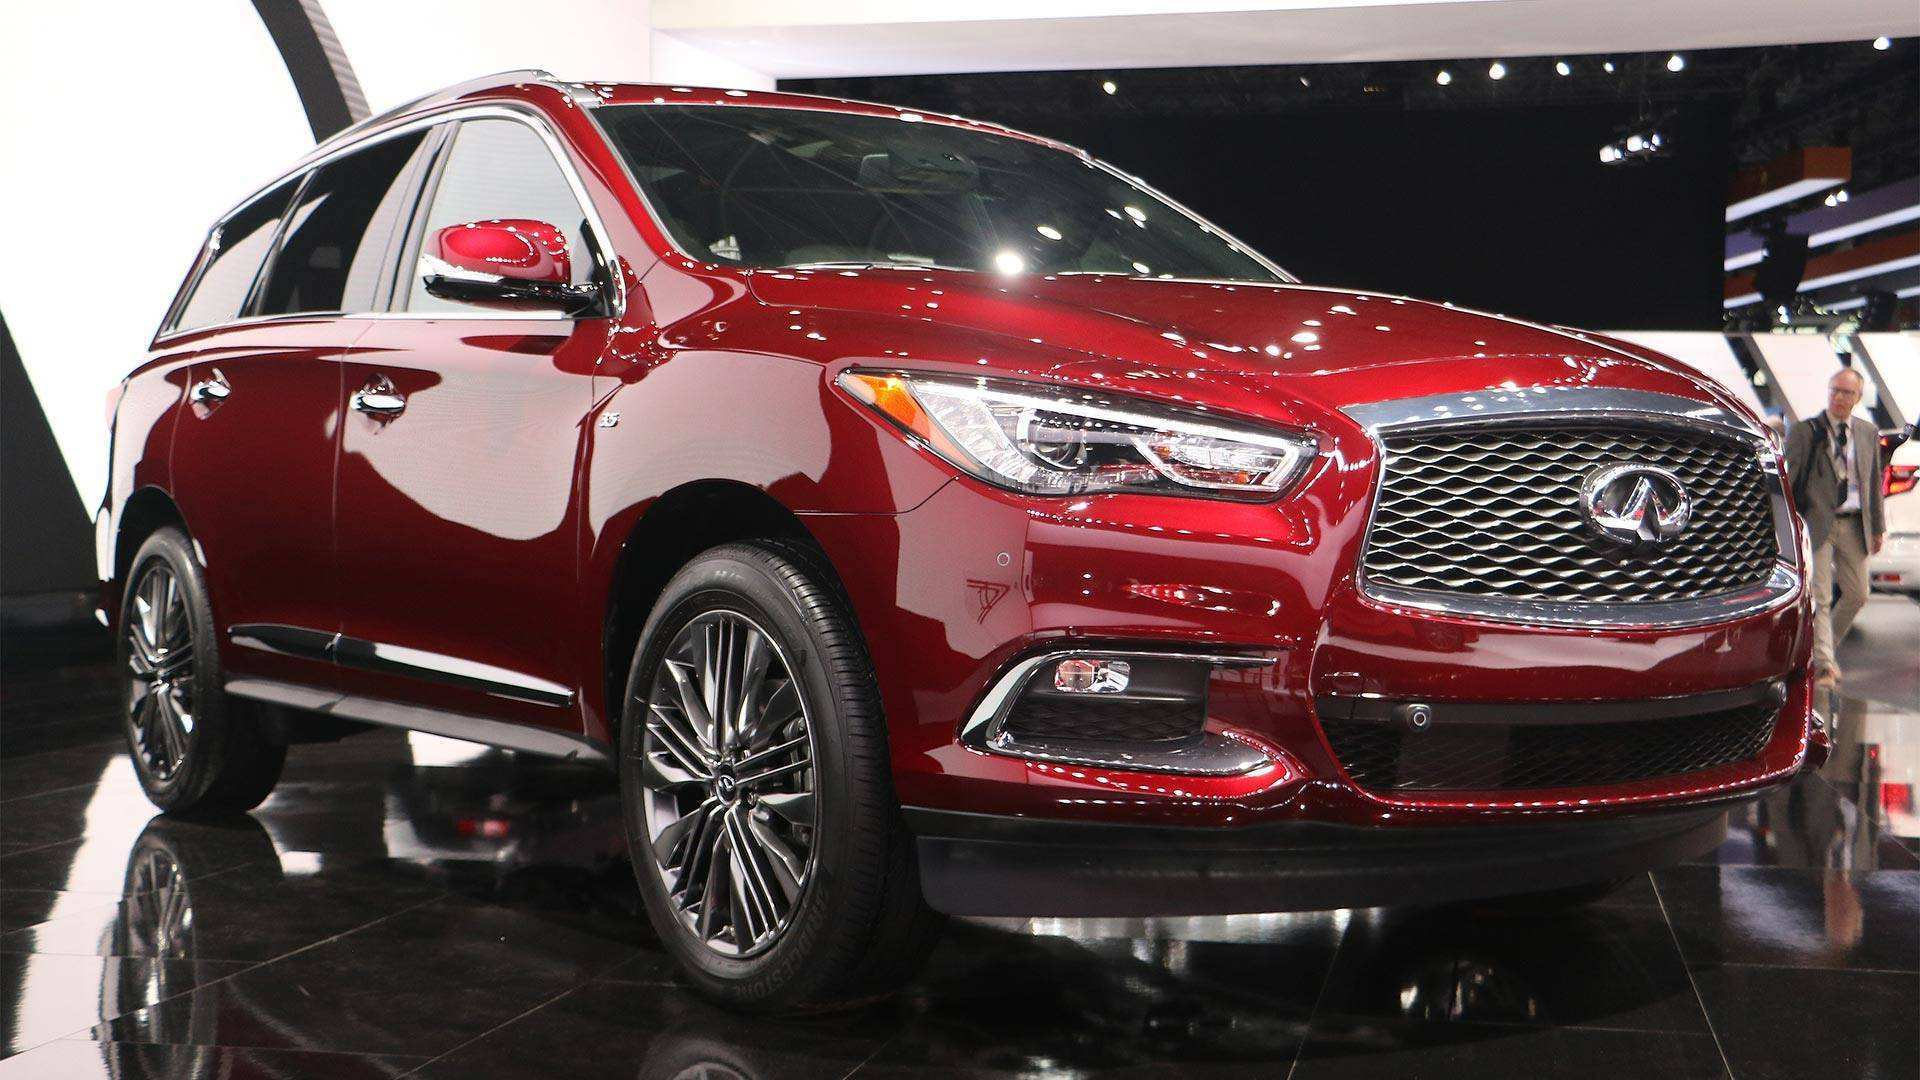 76 The Best 2019 Infiniti Wx60 Redesign Price And Review Images by Best 2019 Infiniti Wx60 Redesign Price And Review